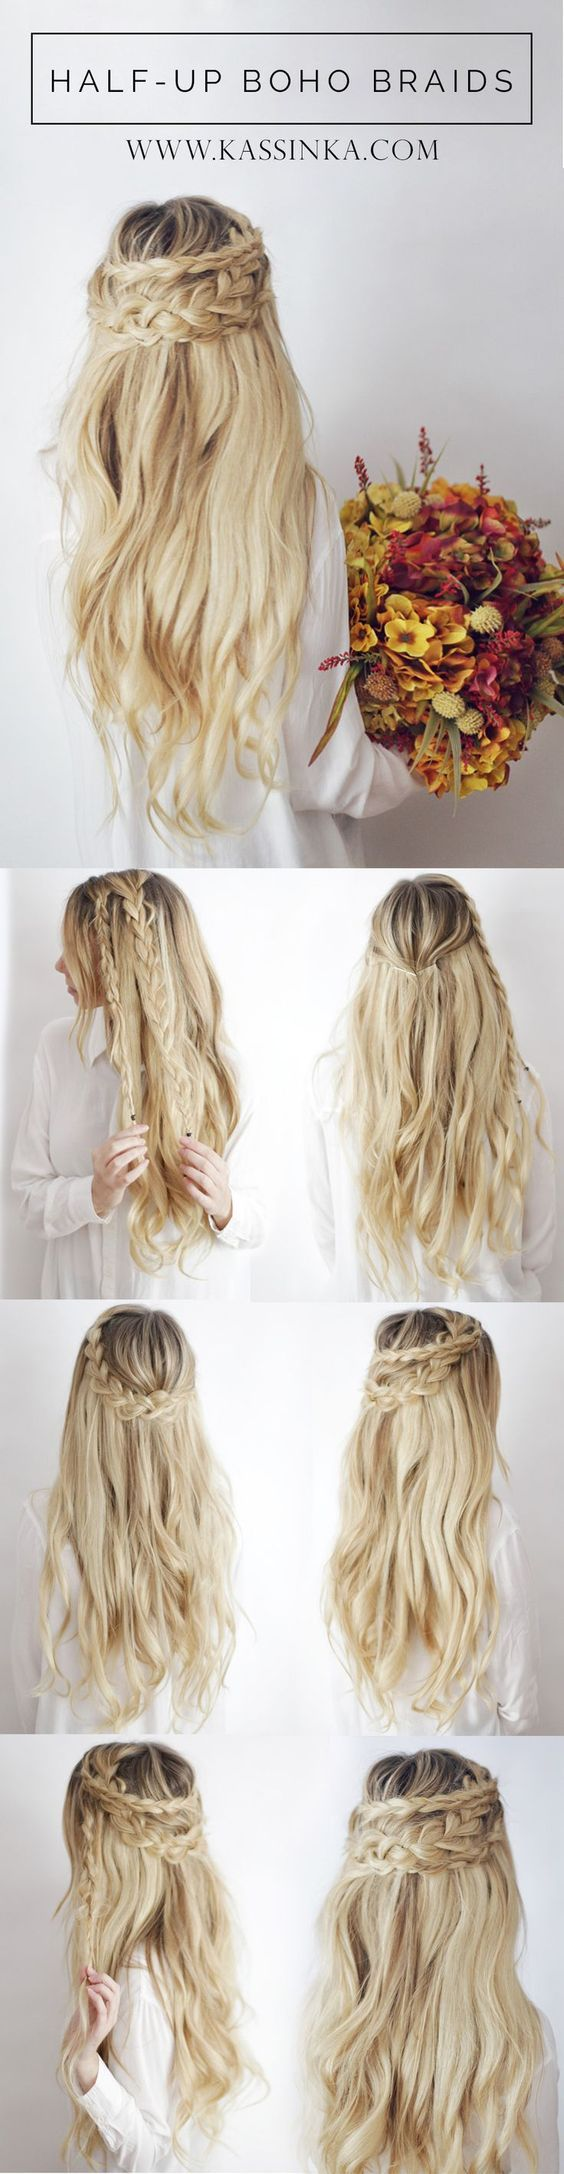 20 Hair Styles You Can Totally DIY - Page 2 of 5 - Trend To Wear ...